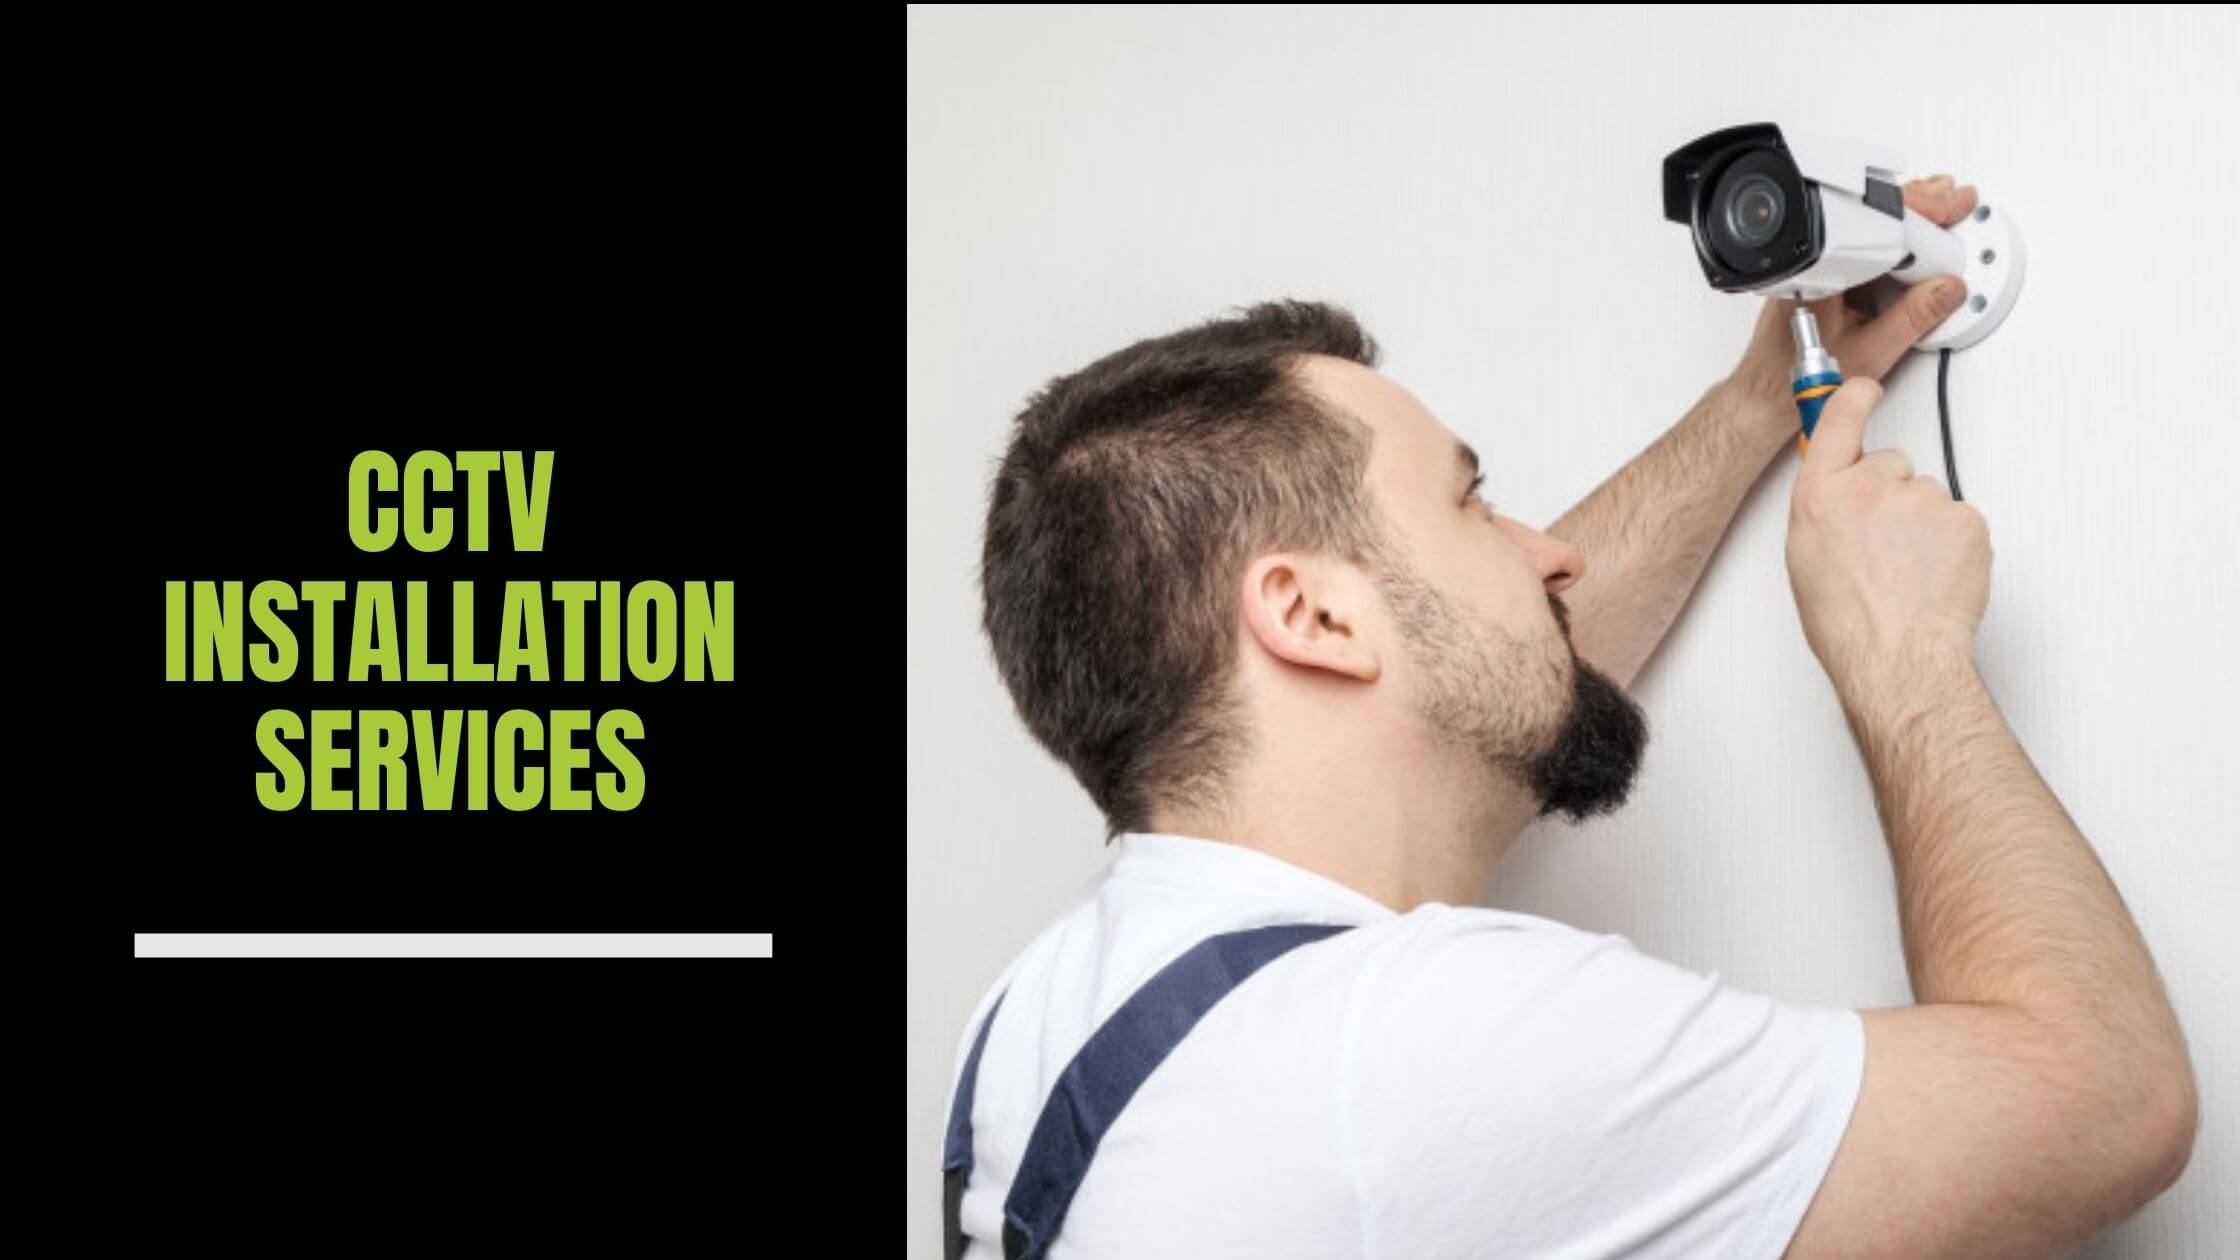 Things To Know About CCTV Installation Services